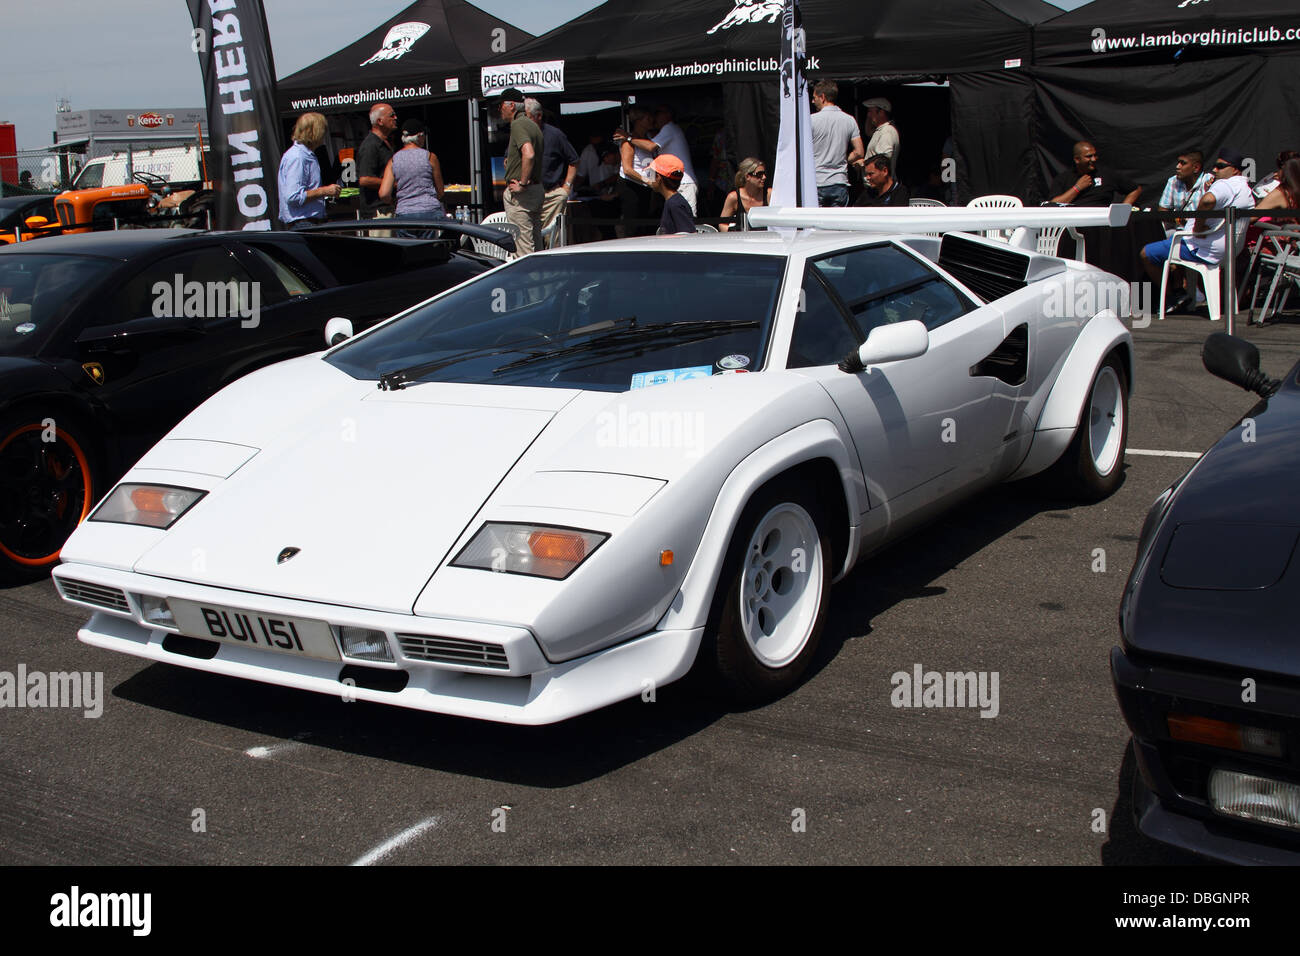 Lamborghini Countach at Silverstone - Stock Image